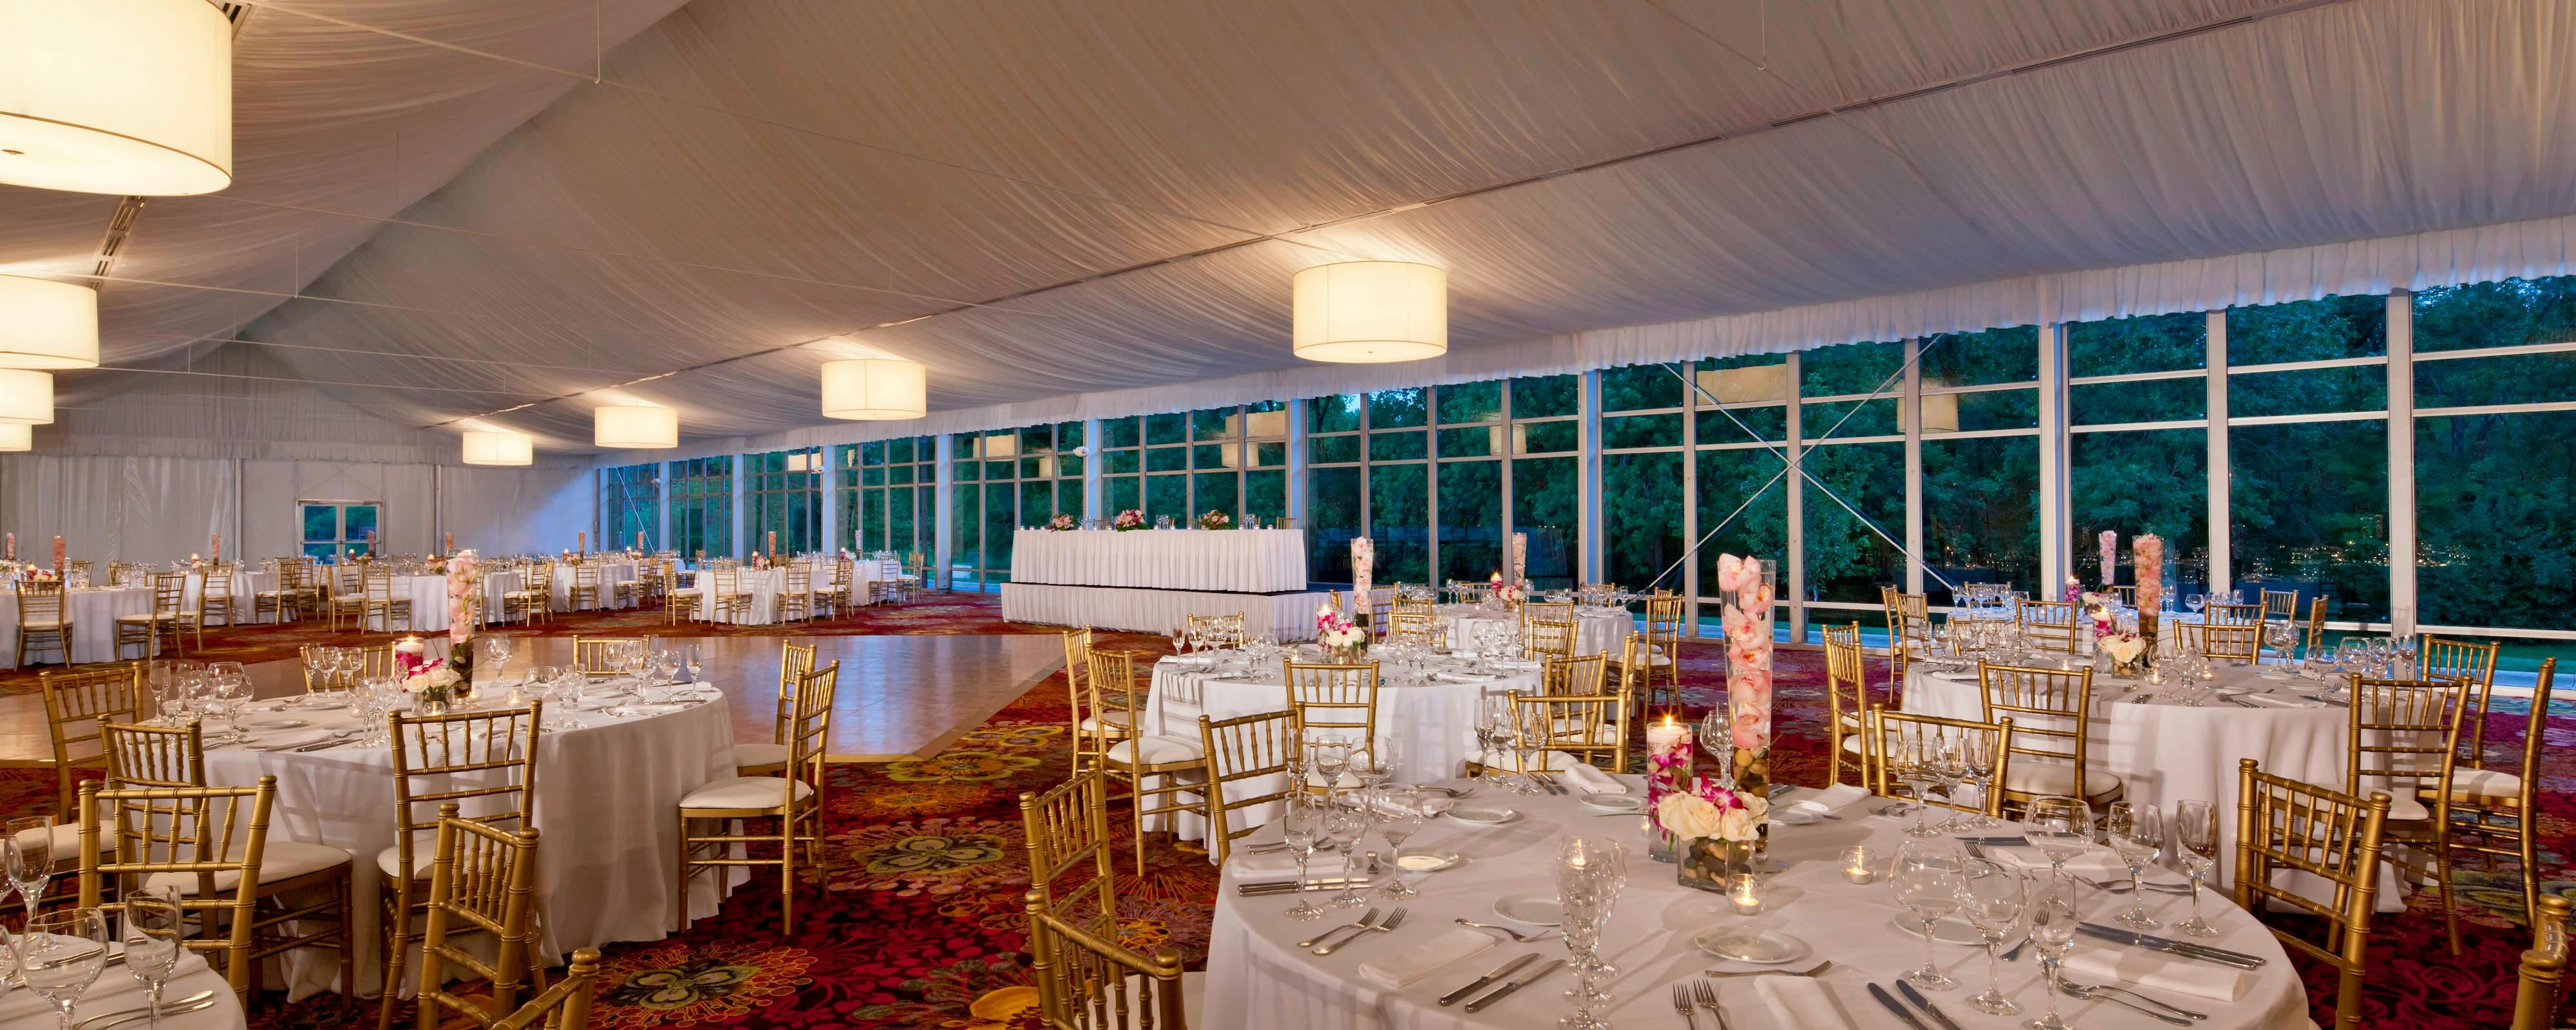 Lincolnshire Wedding Venues Chicago Area Grand Marquee Pavilion Social Events R2serverfo Gallery